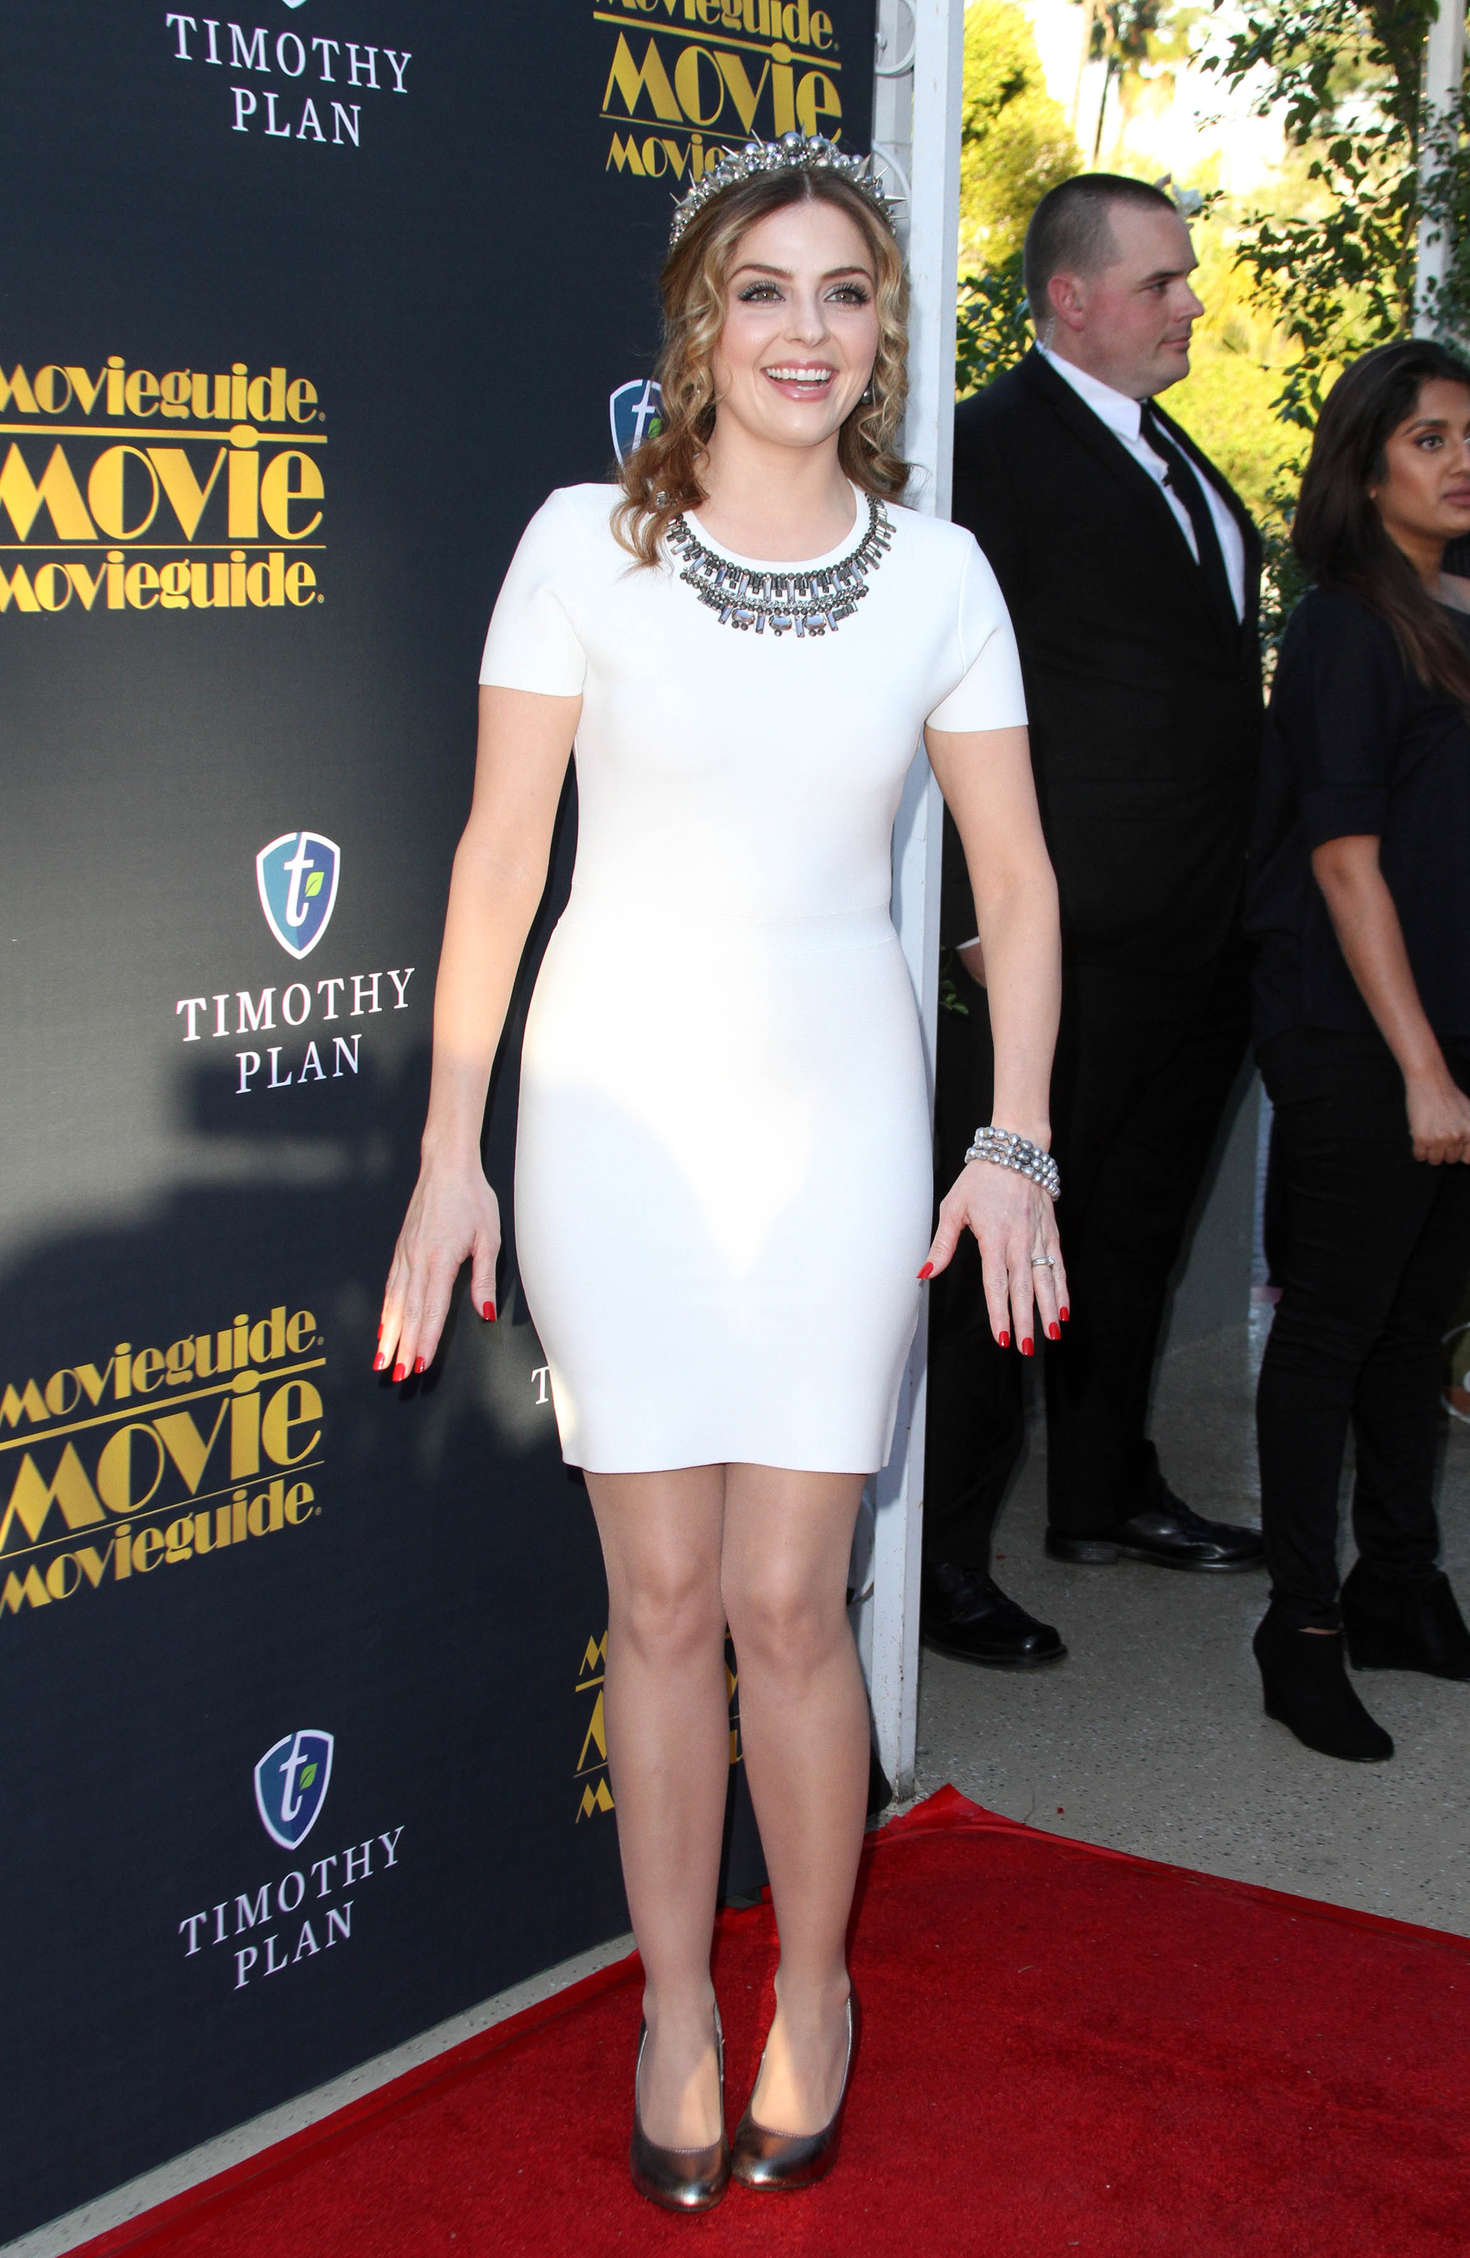 Jen Lilley Annual MovieGuide Awards in Los Angeles